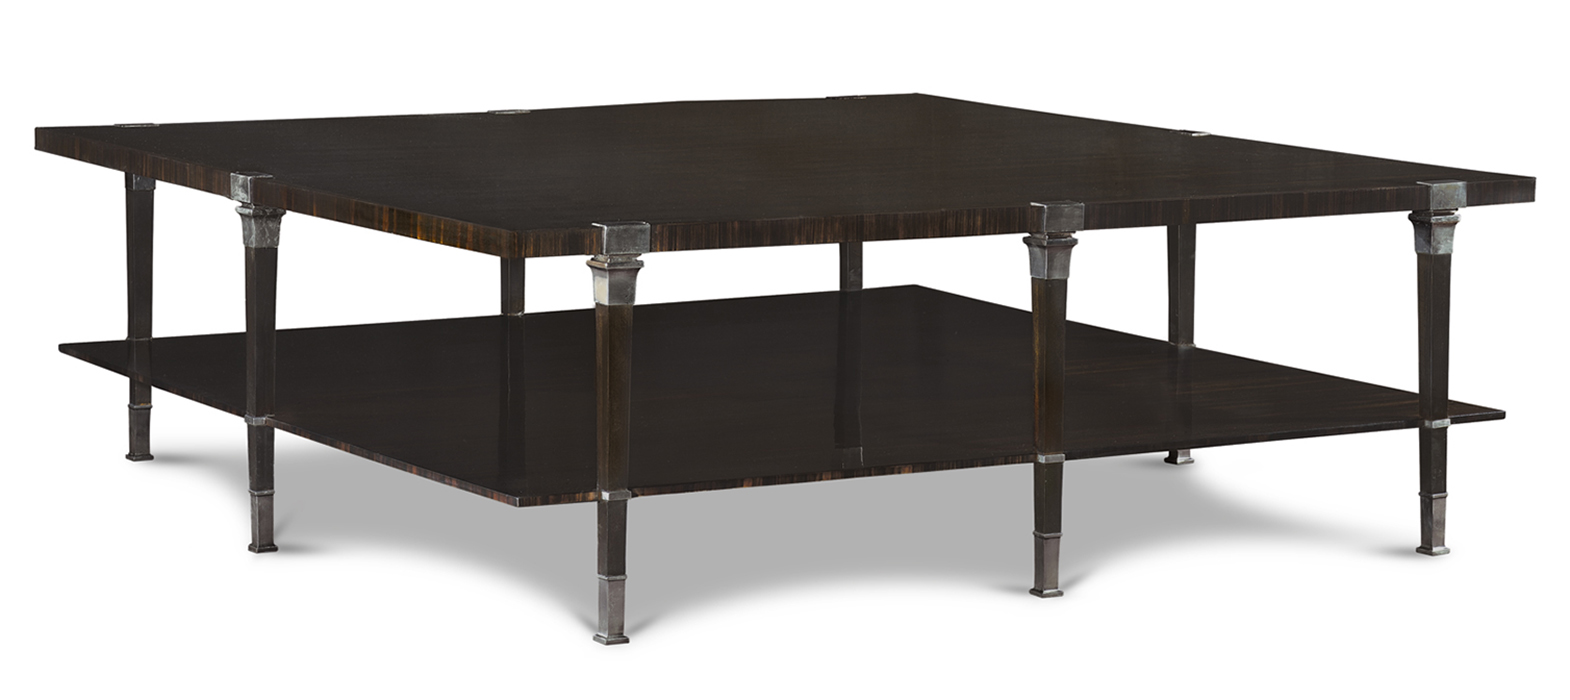 LOUVIERS COCKTAIL TABLE 150 X 150